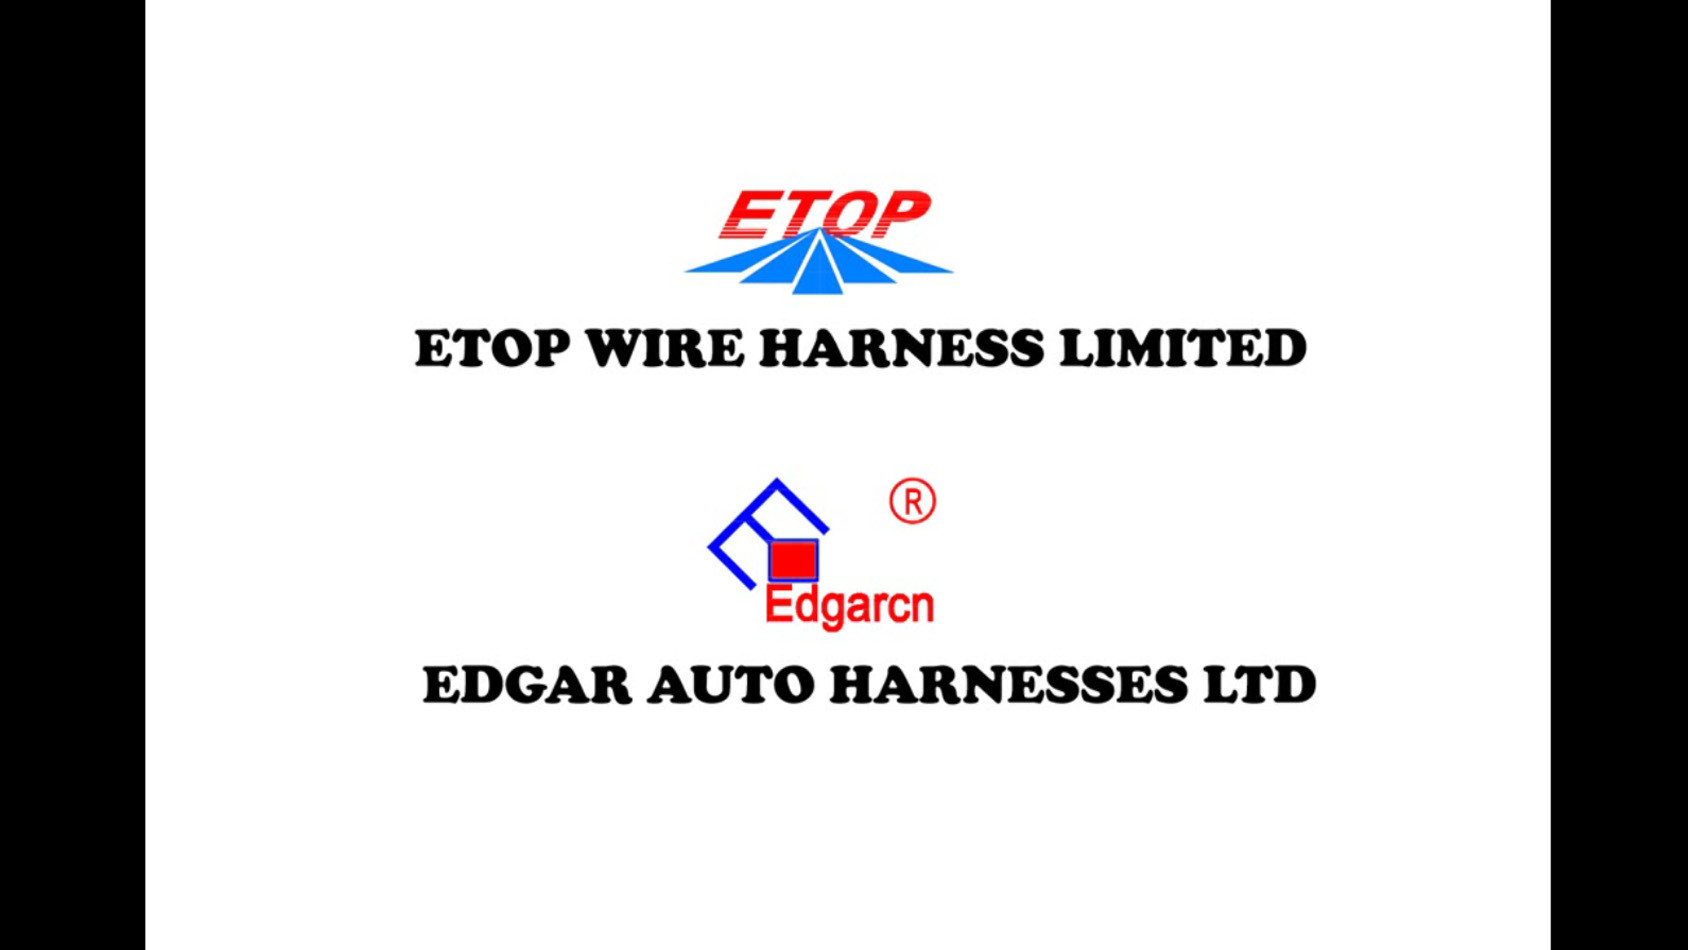 Oem Cable Harness Manufacturer, Automotive Wiring Harness